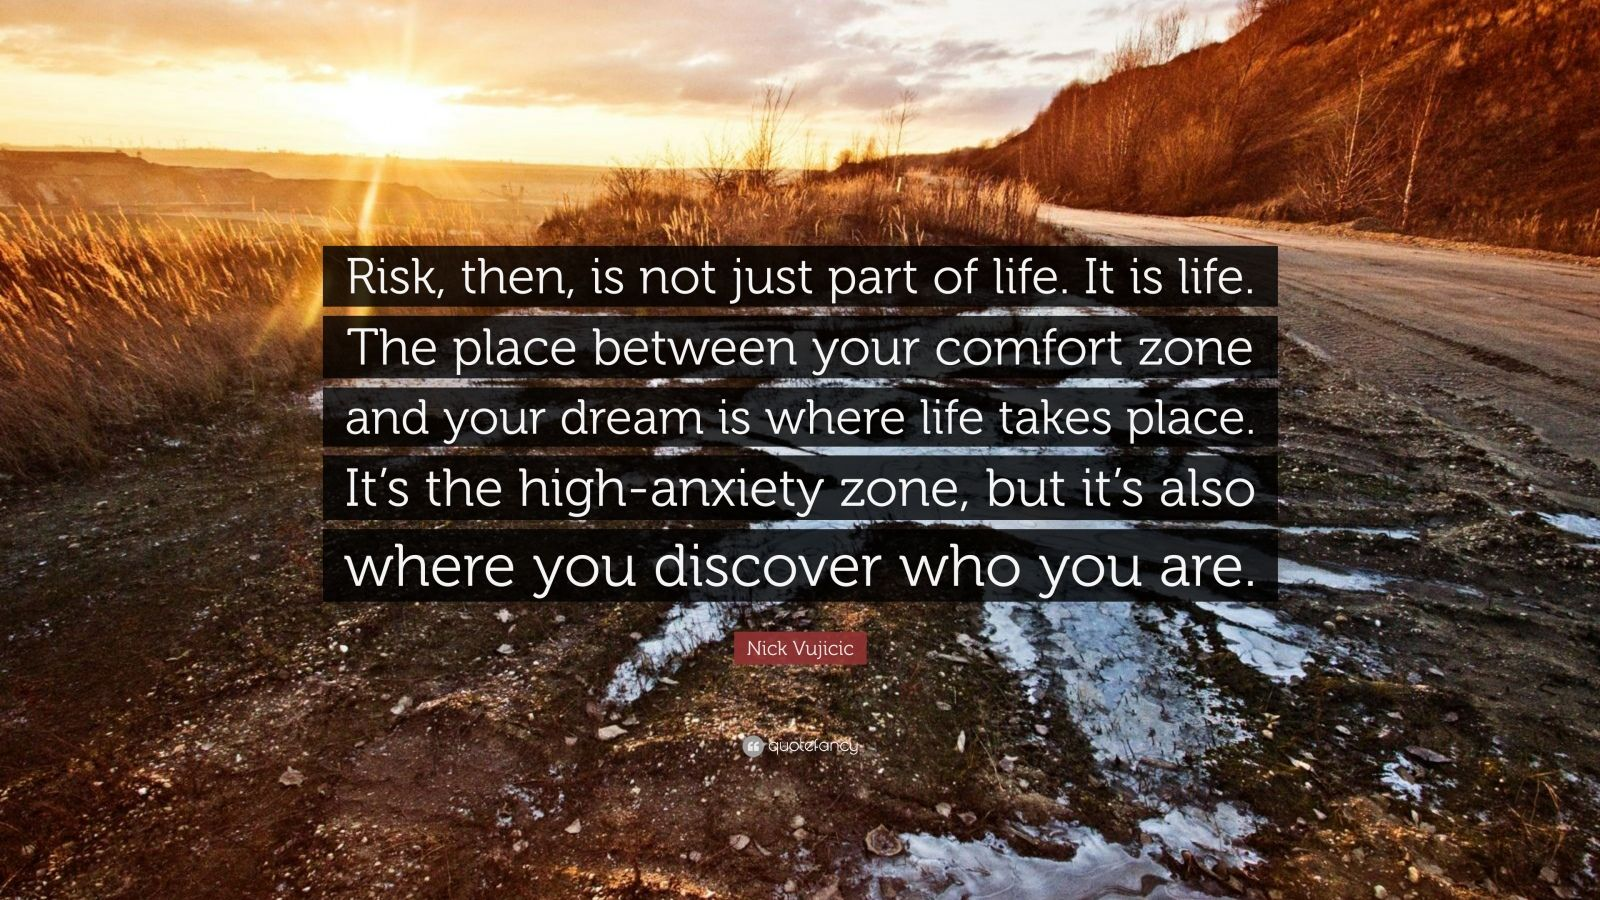 "Risk Quotes: ""Risk, then, is not just part of life. It is life. The place between your comfort zone and your dream is where life takes place. It's the high-anxiety zone, but it's also where you discover who you are."" — Nick Vujicic"